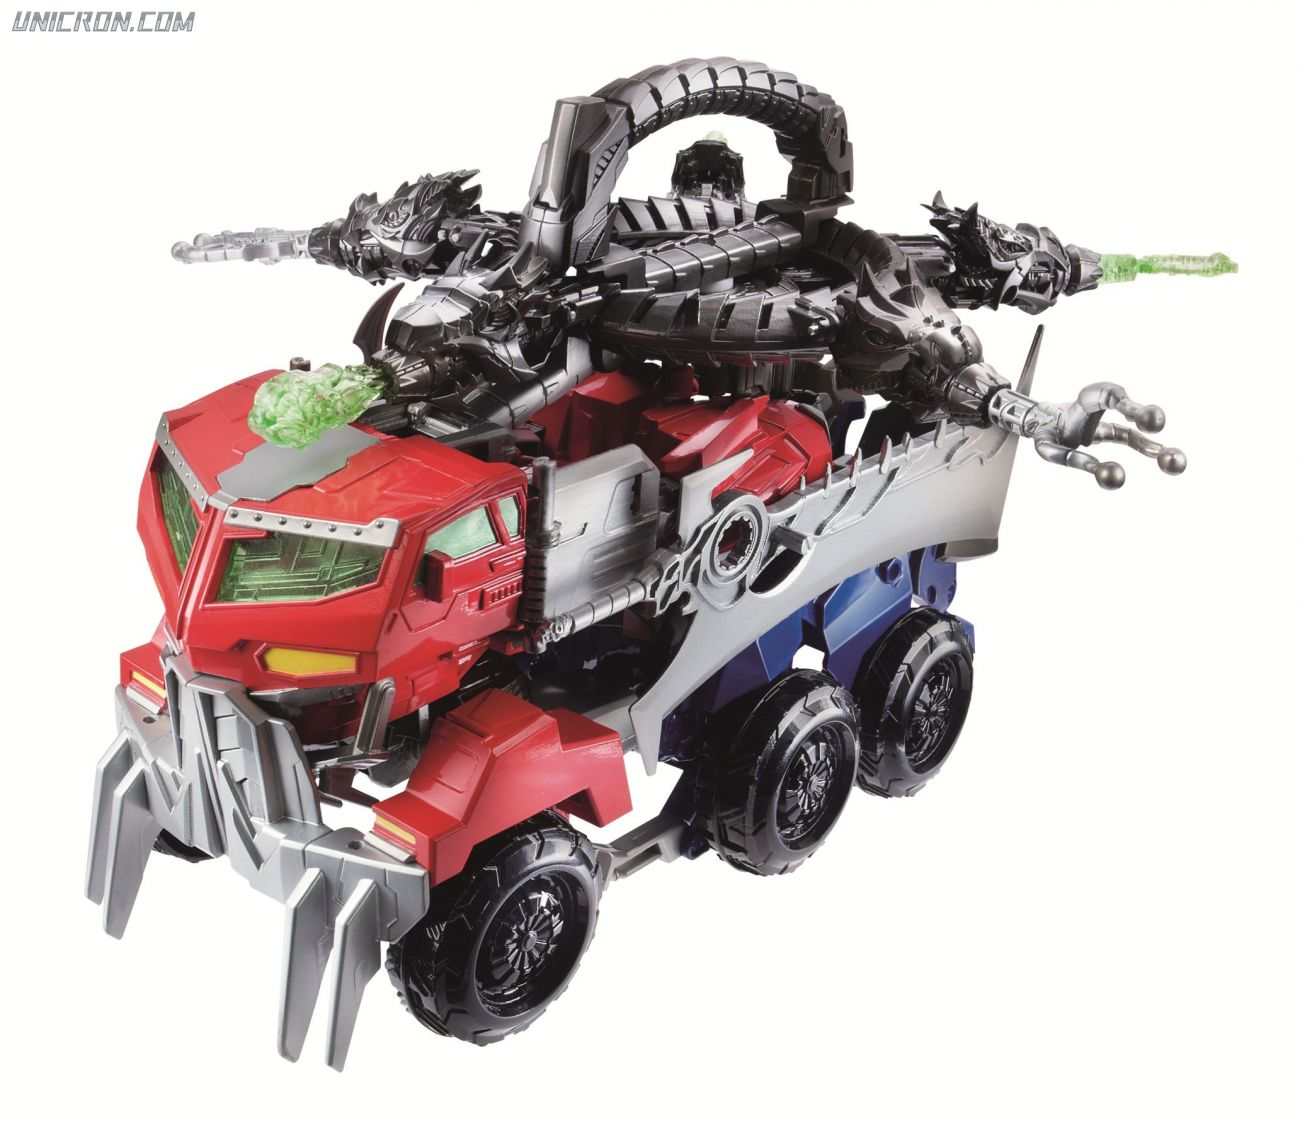 Transformers Prime Beast Hunter Optimus Prime (Beast Hunters) toy